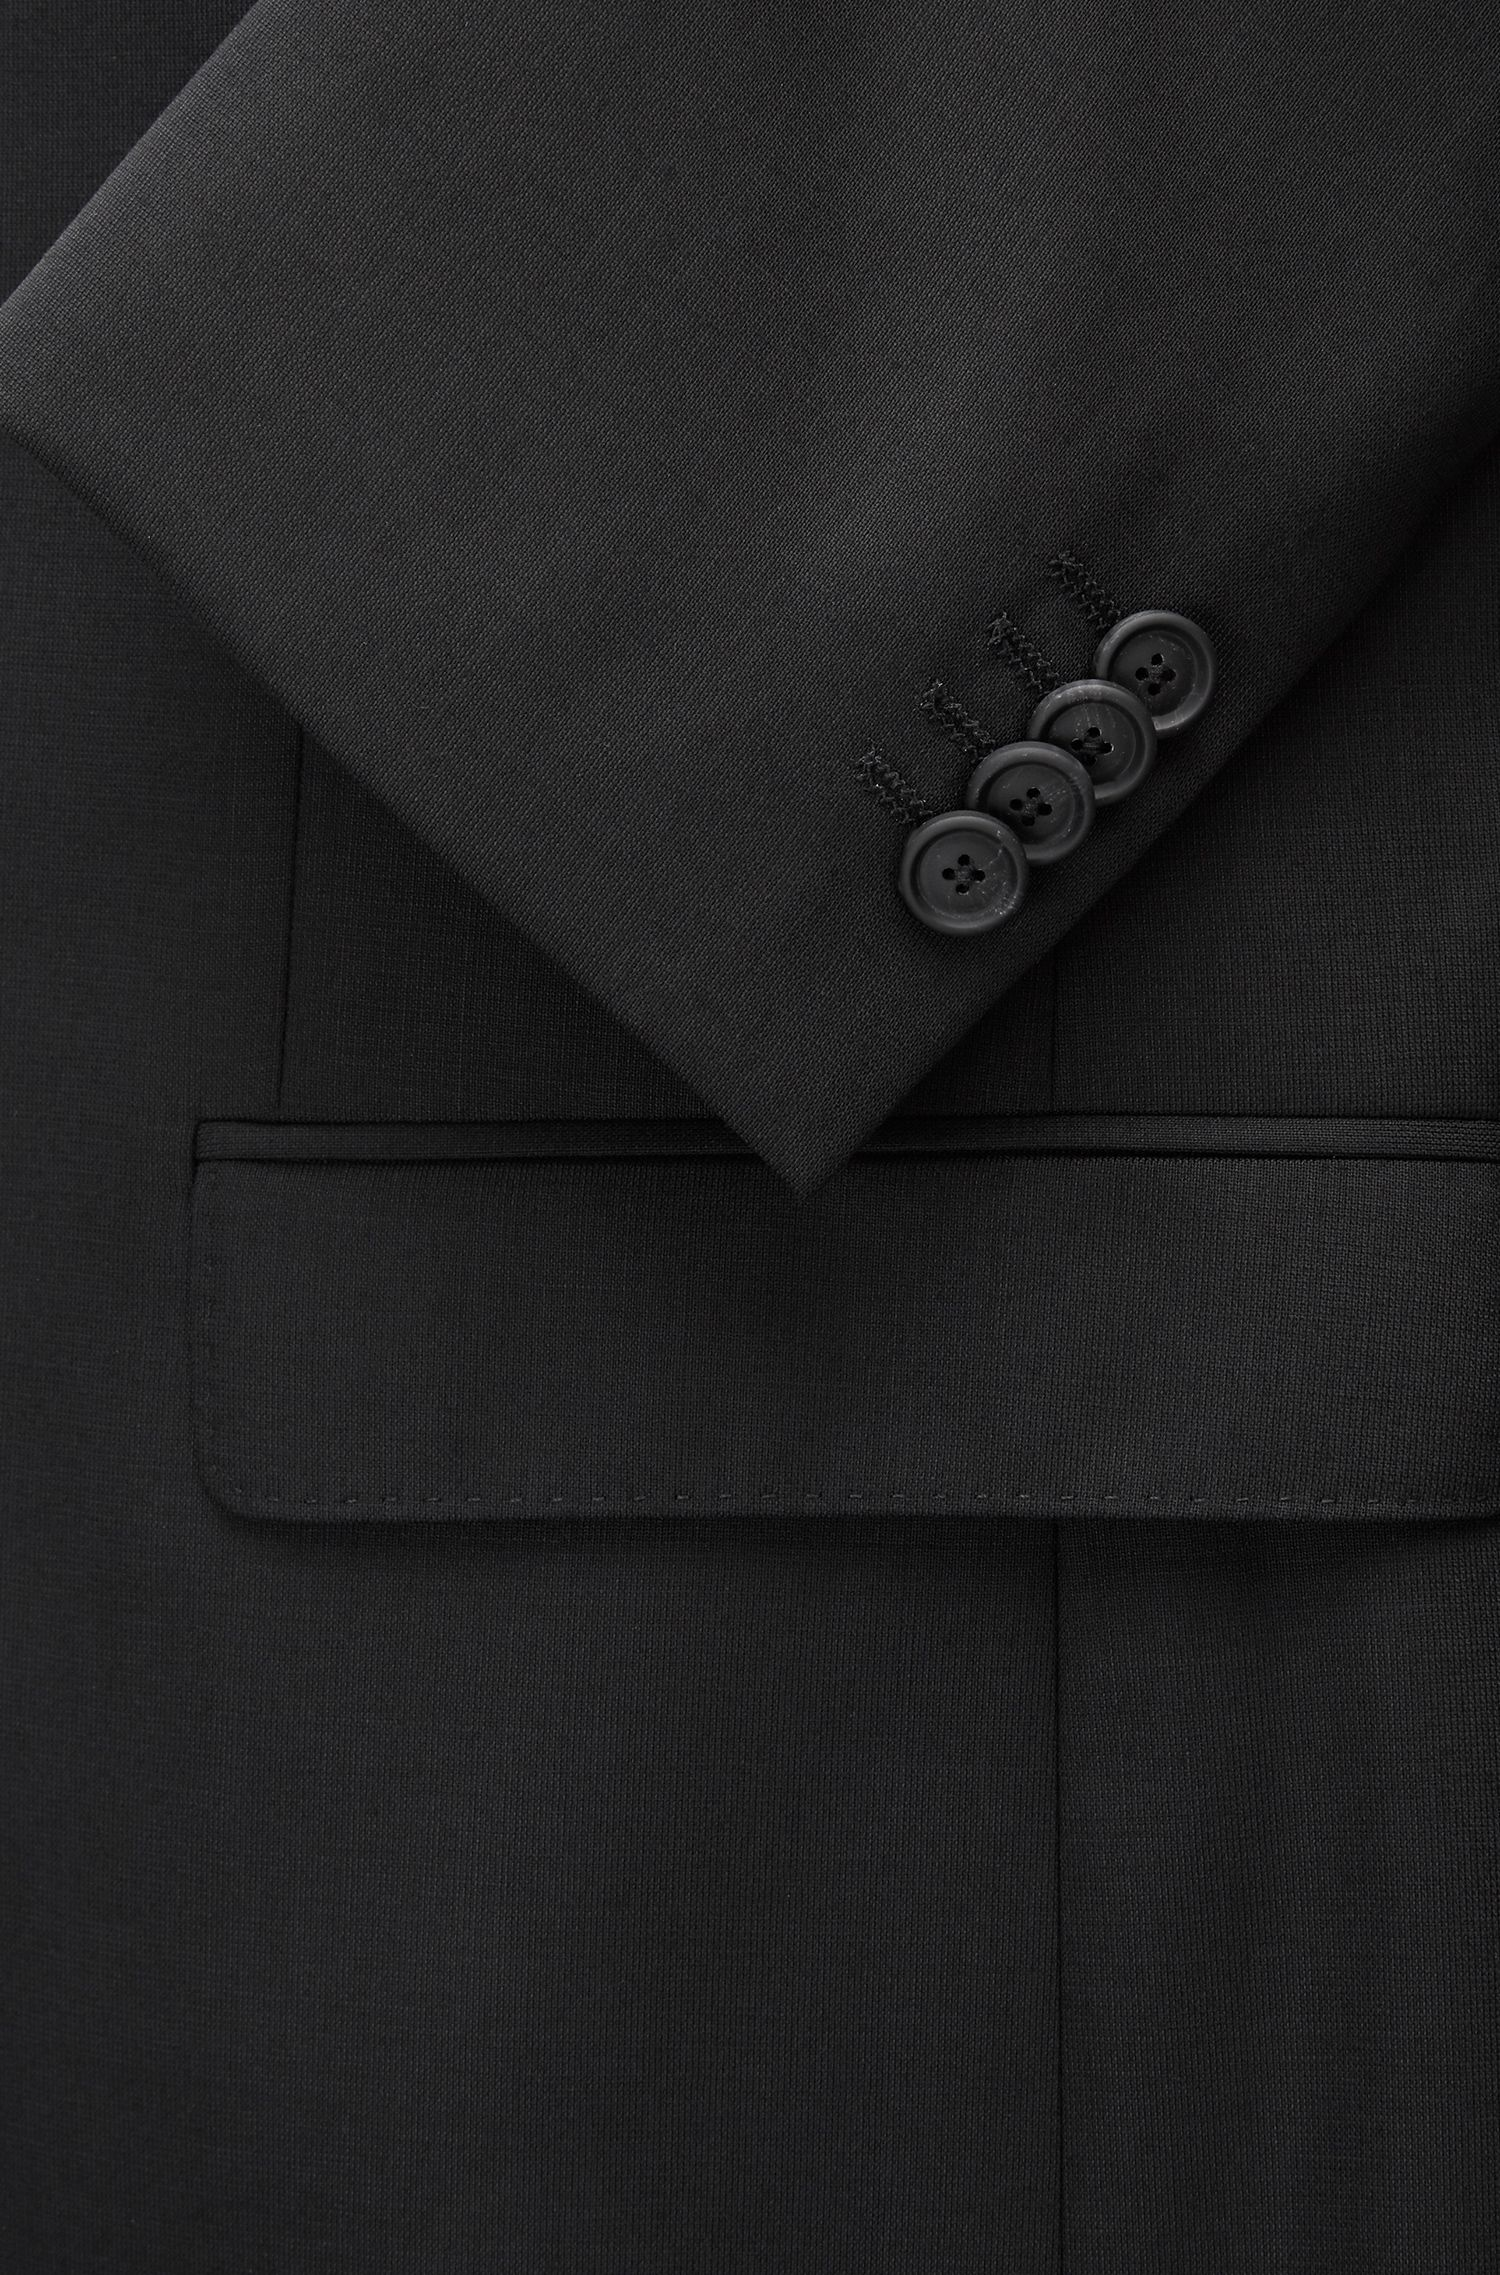 Stretch Tailoring Wool Travel Suit, Slim Fit | Nestro/Byte